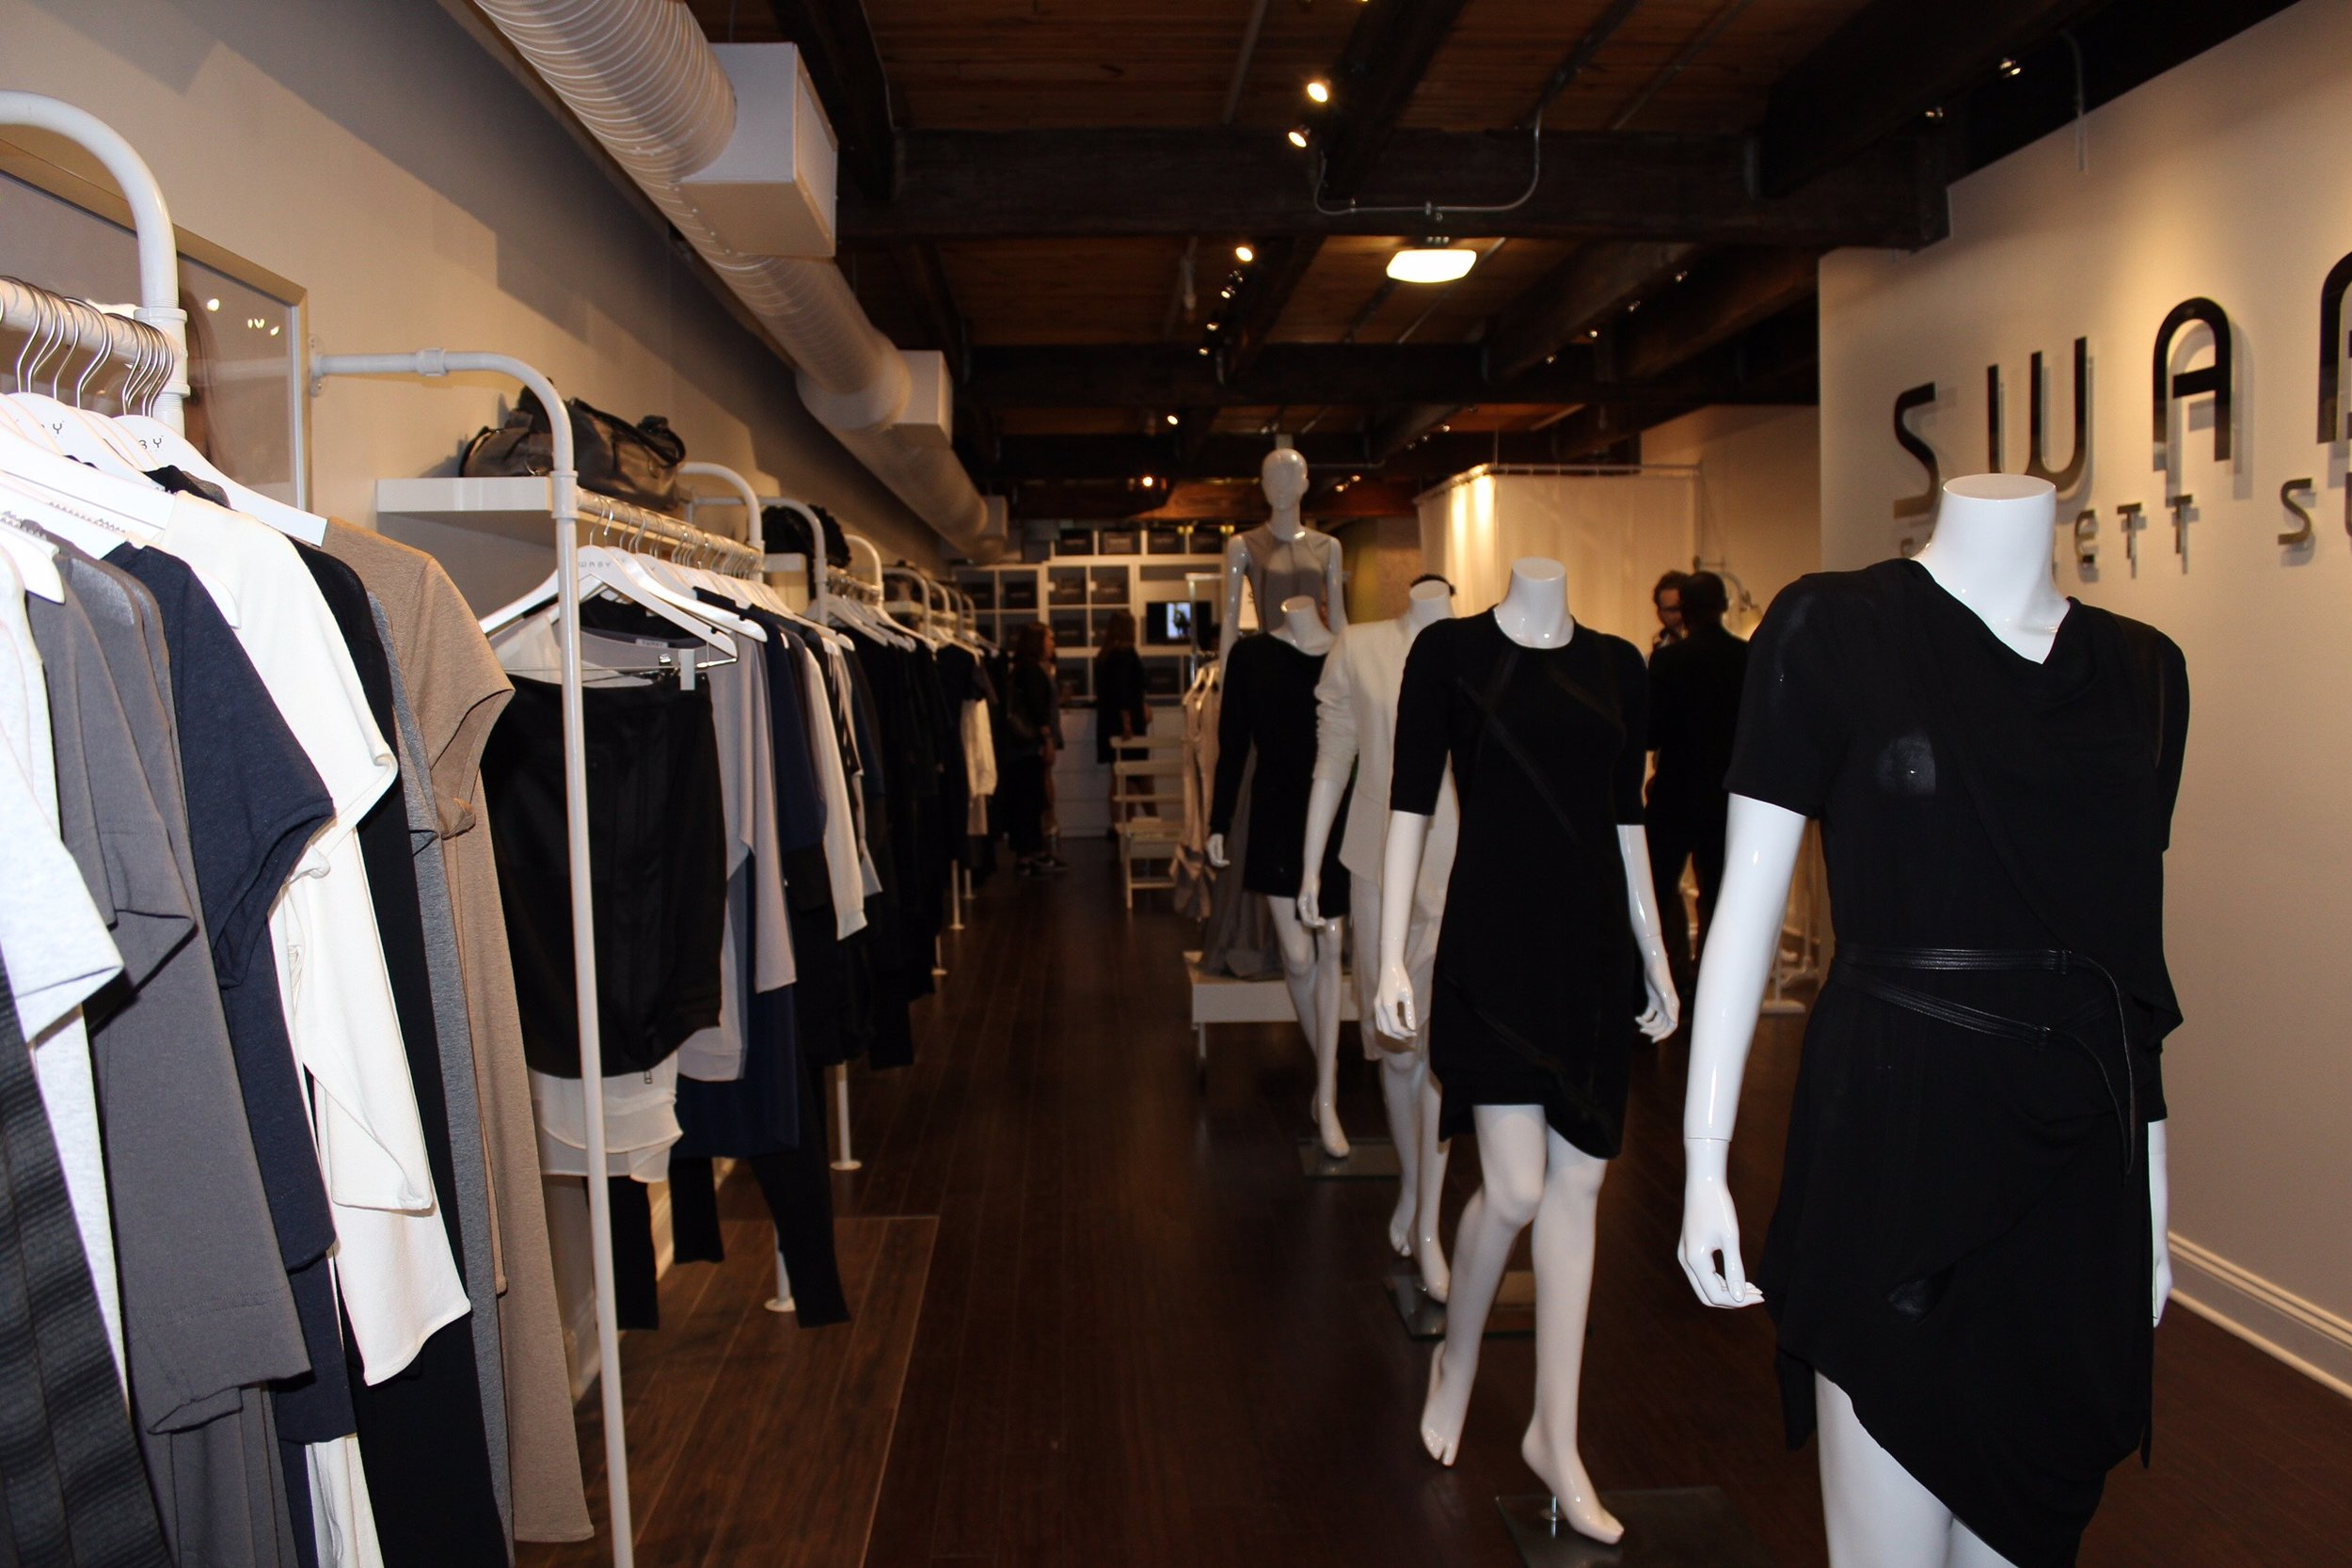 She has a new store opened in River North and it is a gorgeous store with beautiful pieces from the designer! Get in to check it out and start shopping   Shernett Swaby  .